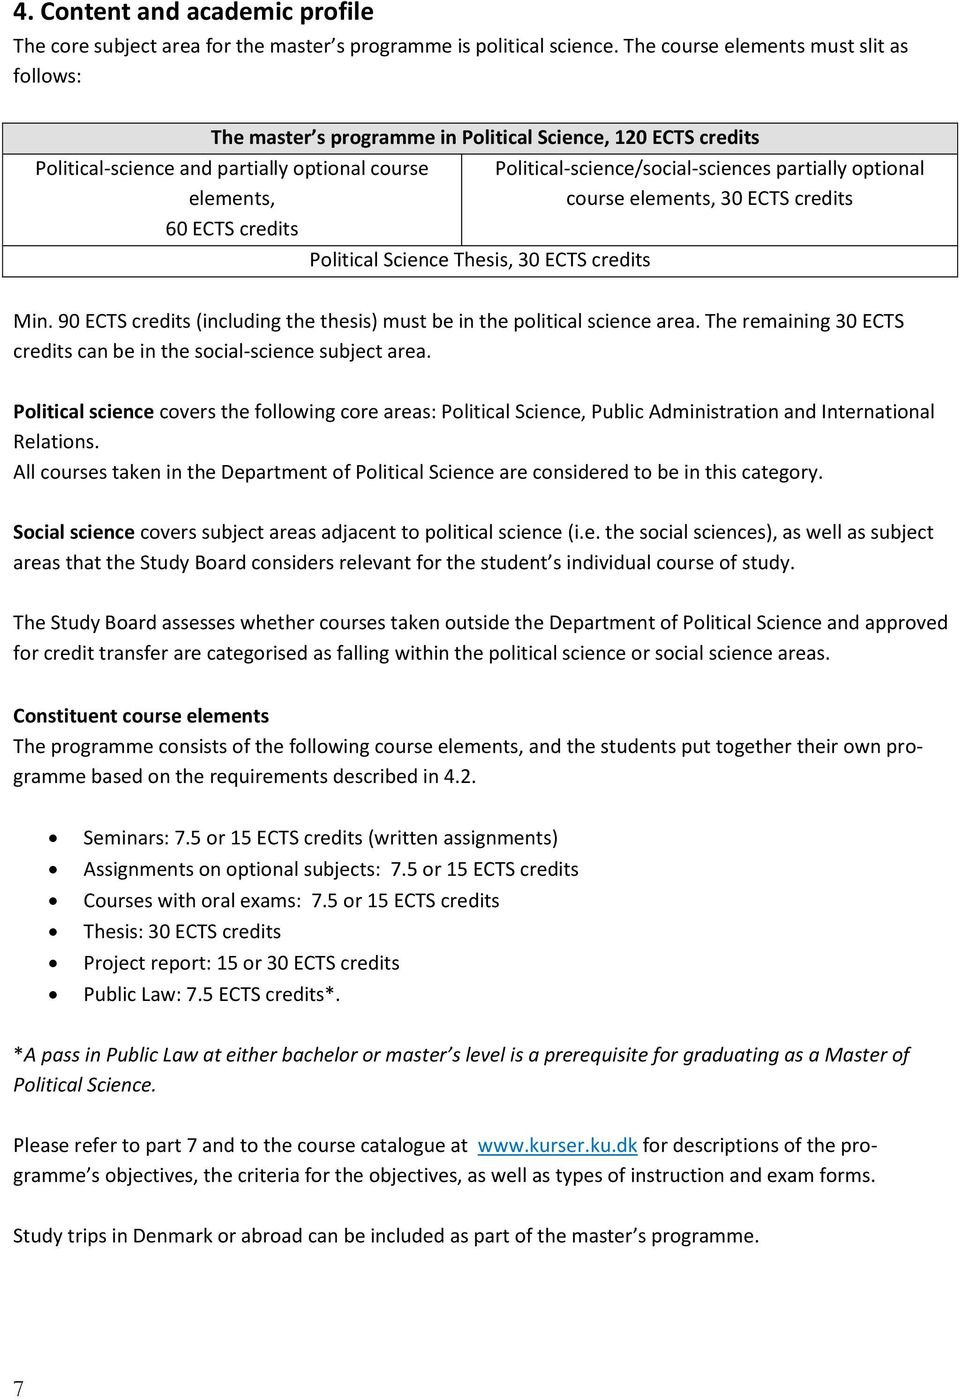 Thesis, 30 ECTS credits Political-science/social-sciences partially optional course elements, 30 ECTS credits Min. 90 ECTS credits (including the thesis) must be in the political science area.